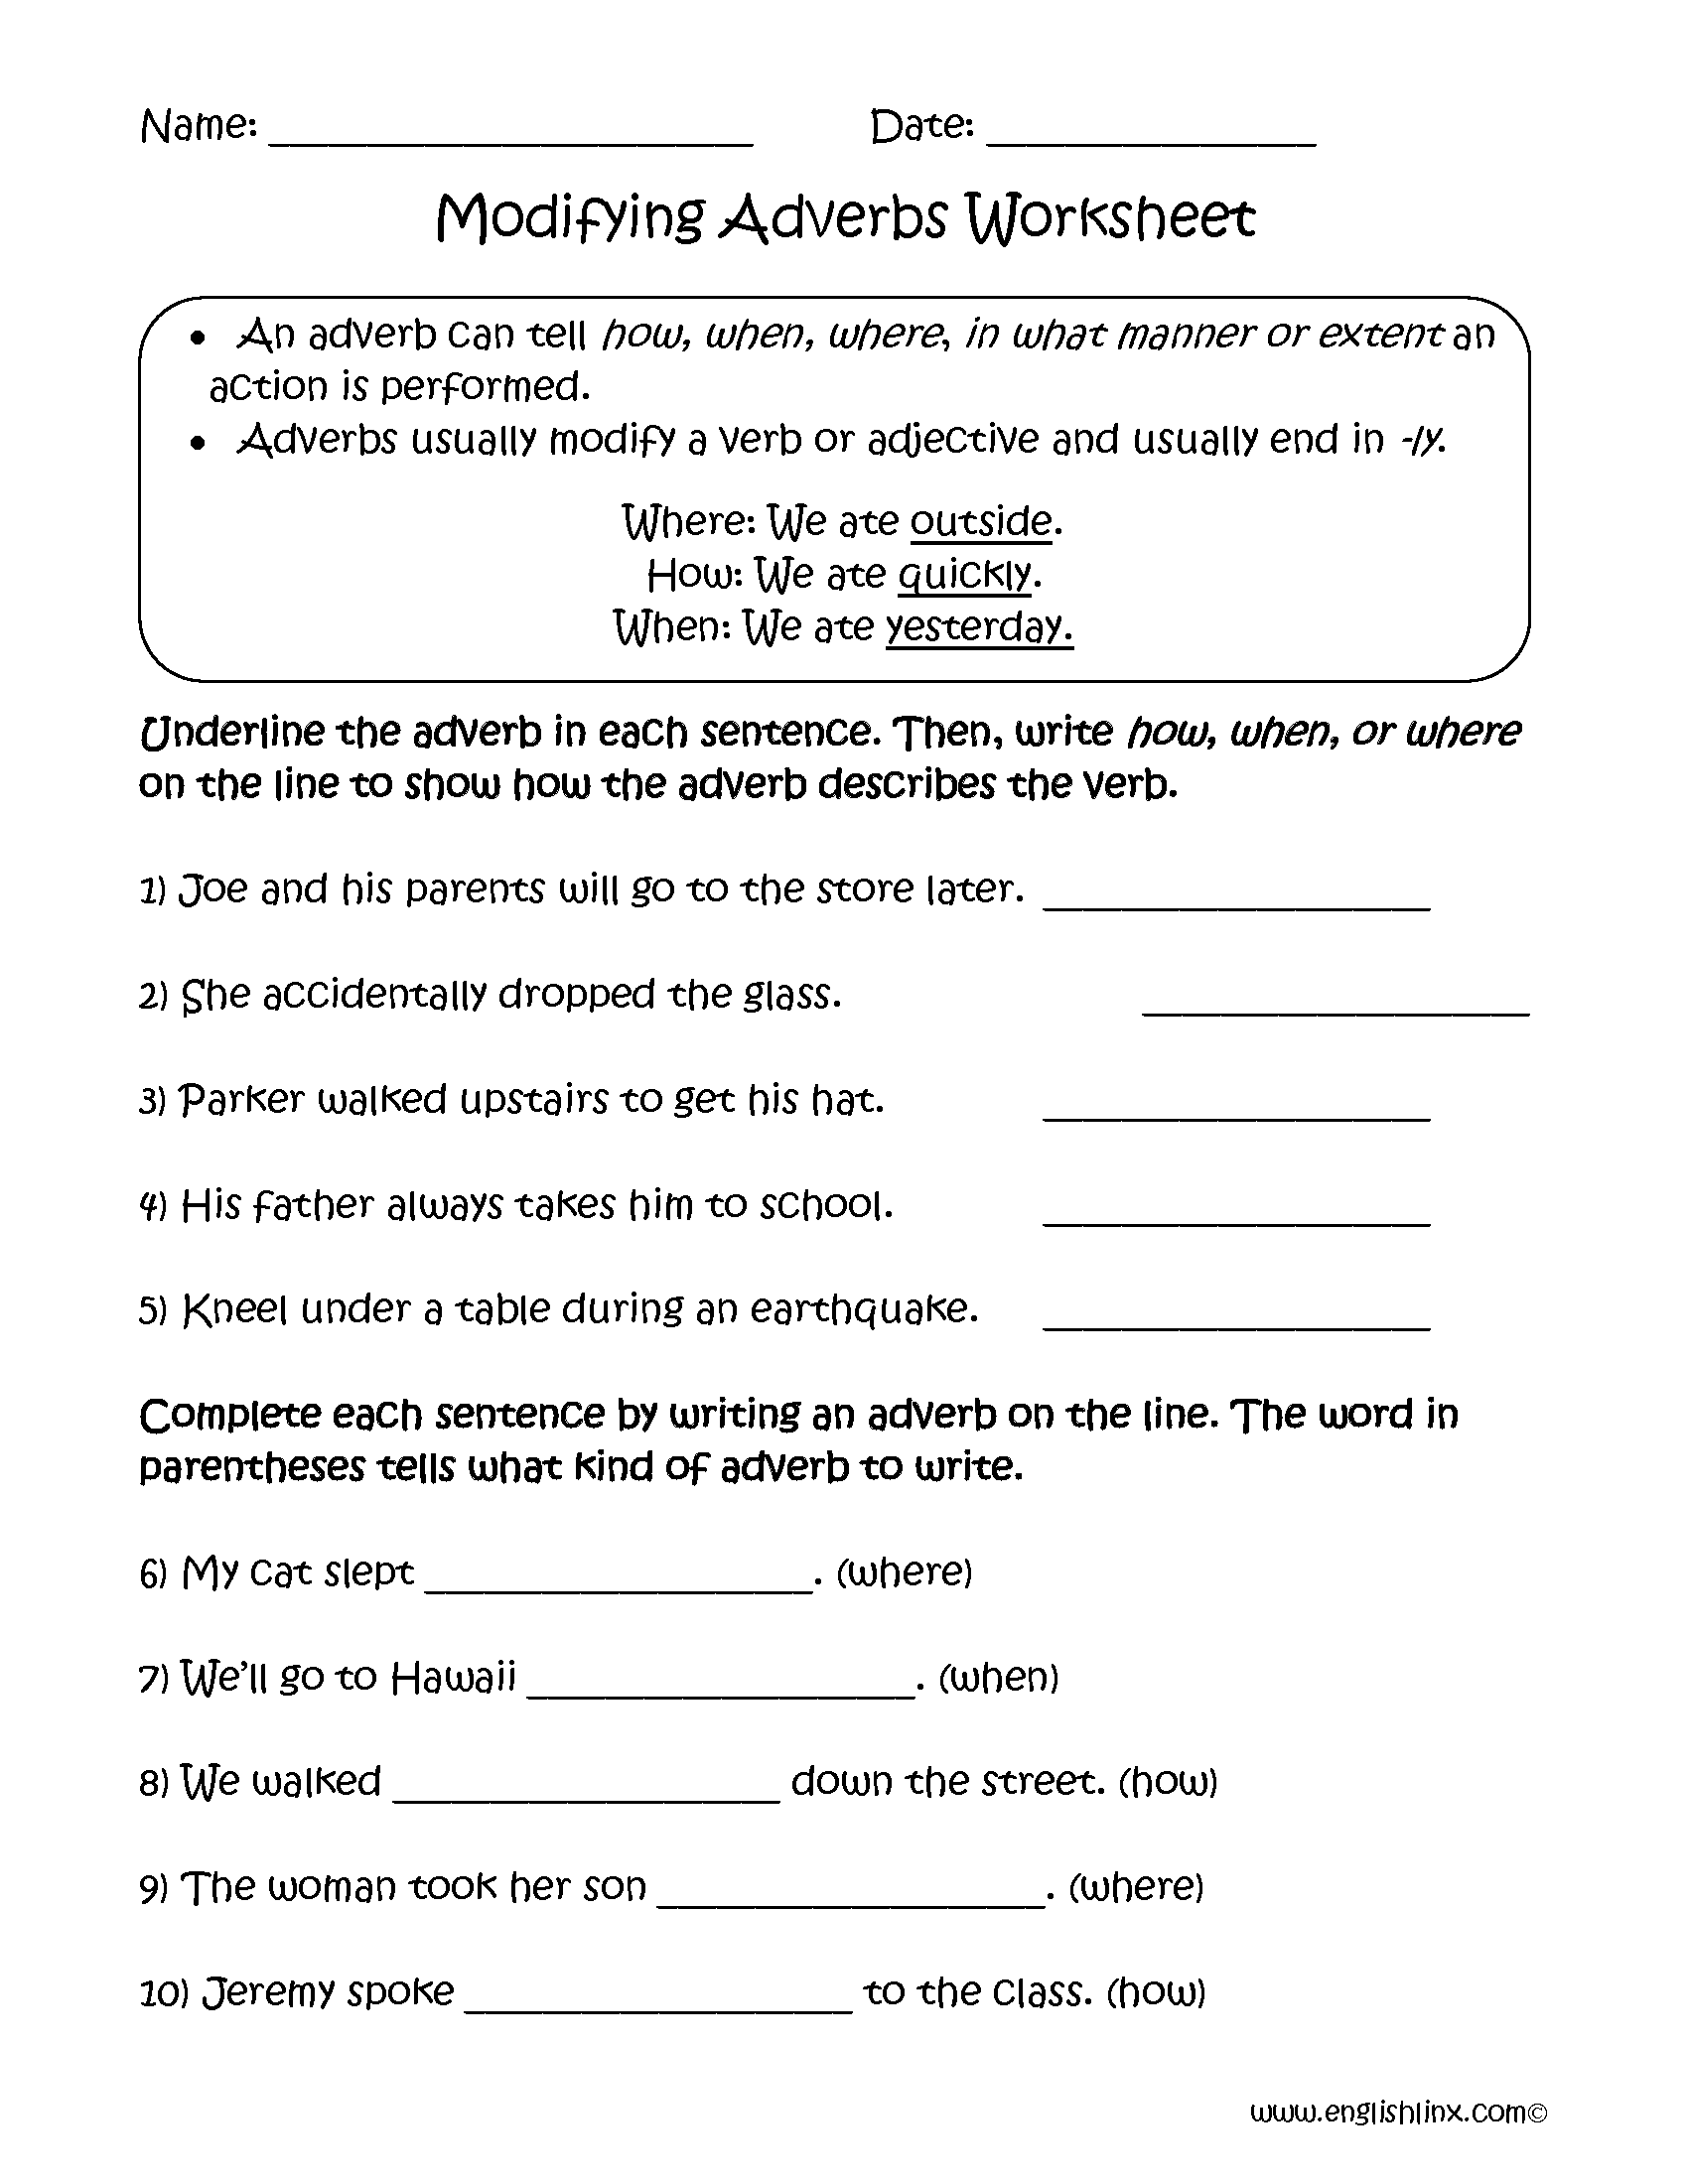 Modifying Adverbs Worksheets   Adverbs worksheet [ 2200 x 1700 Pixel ]